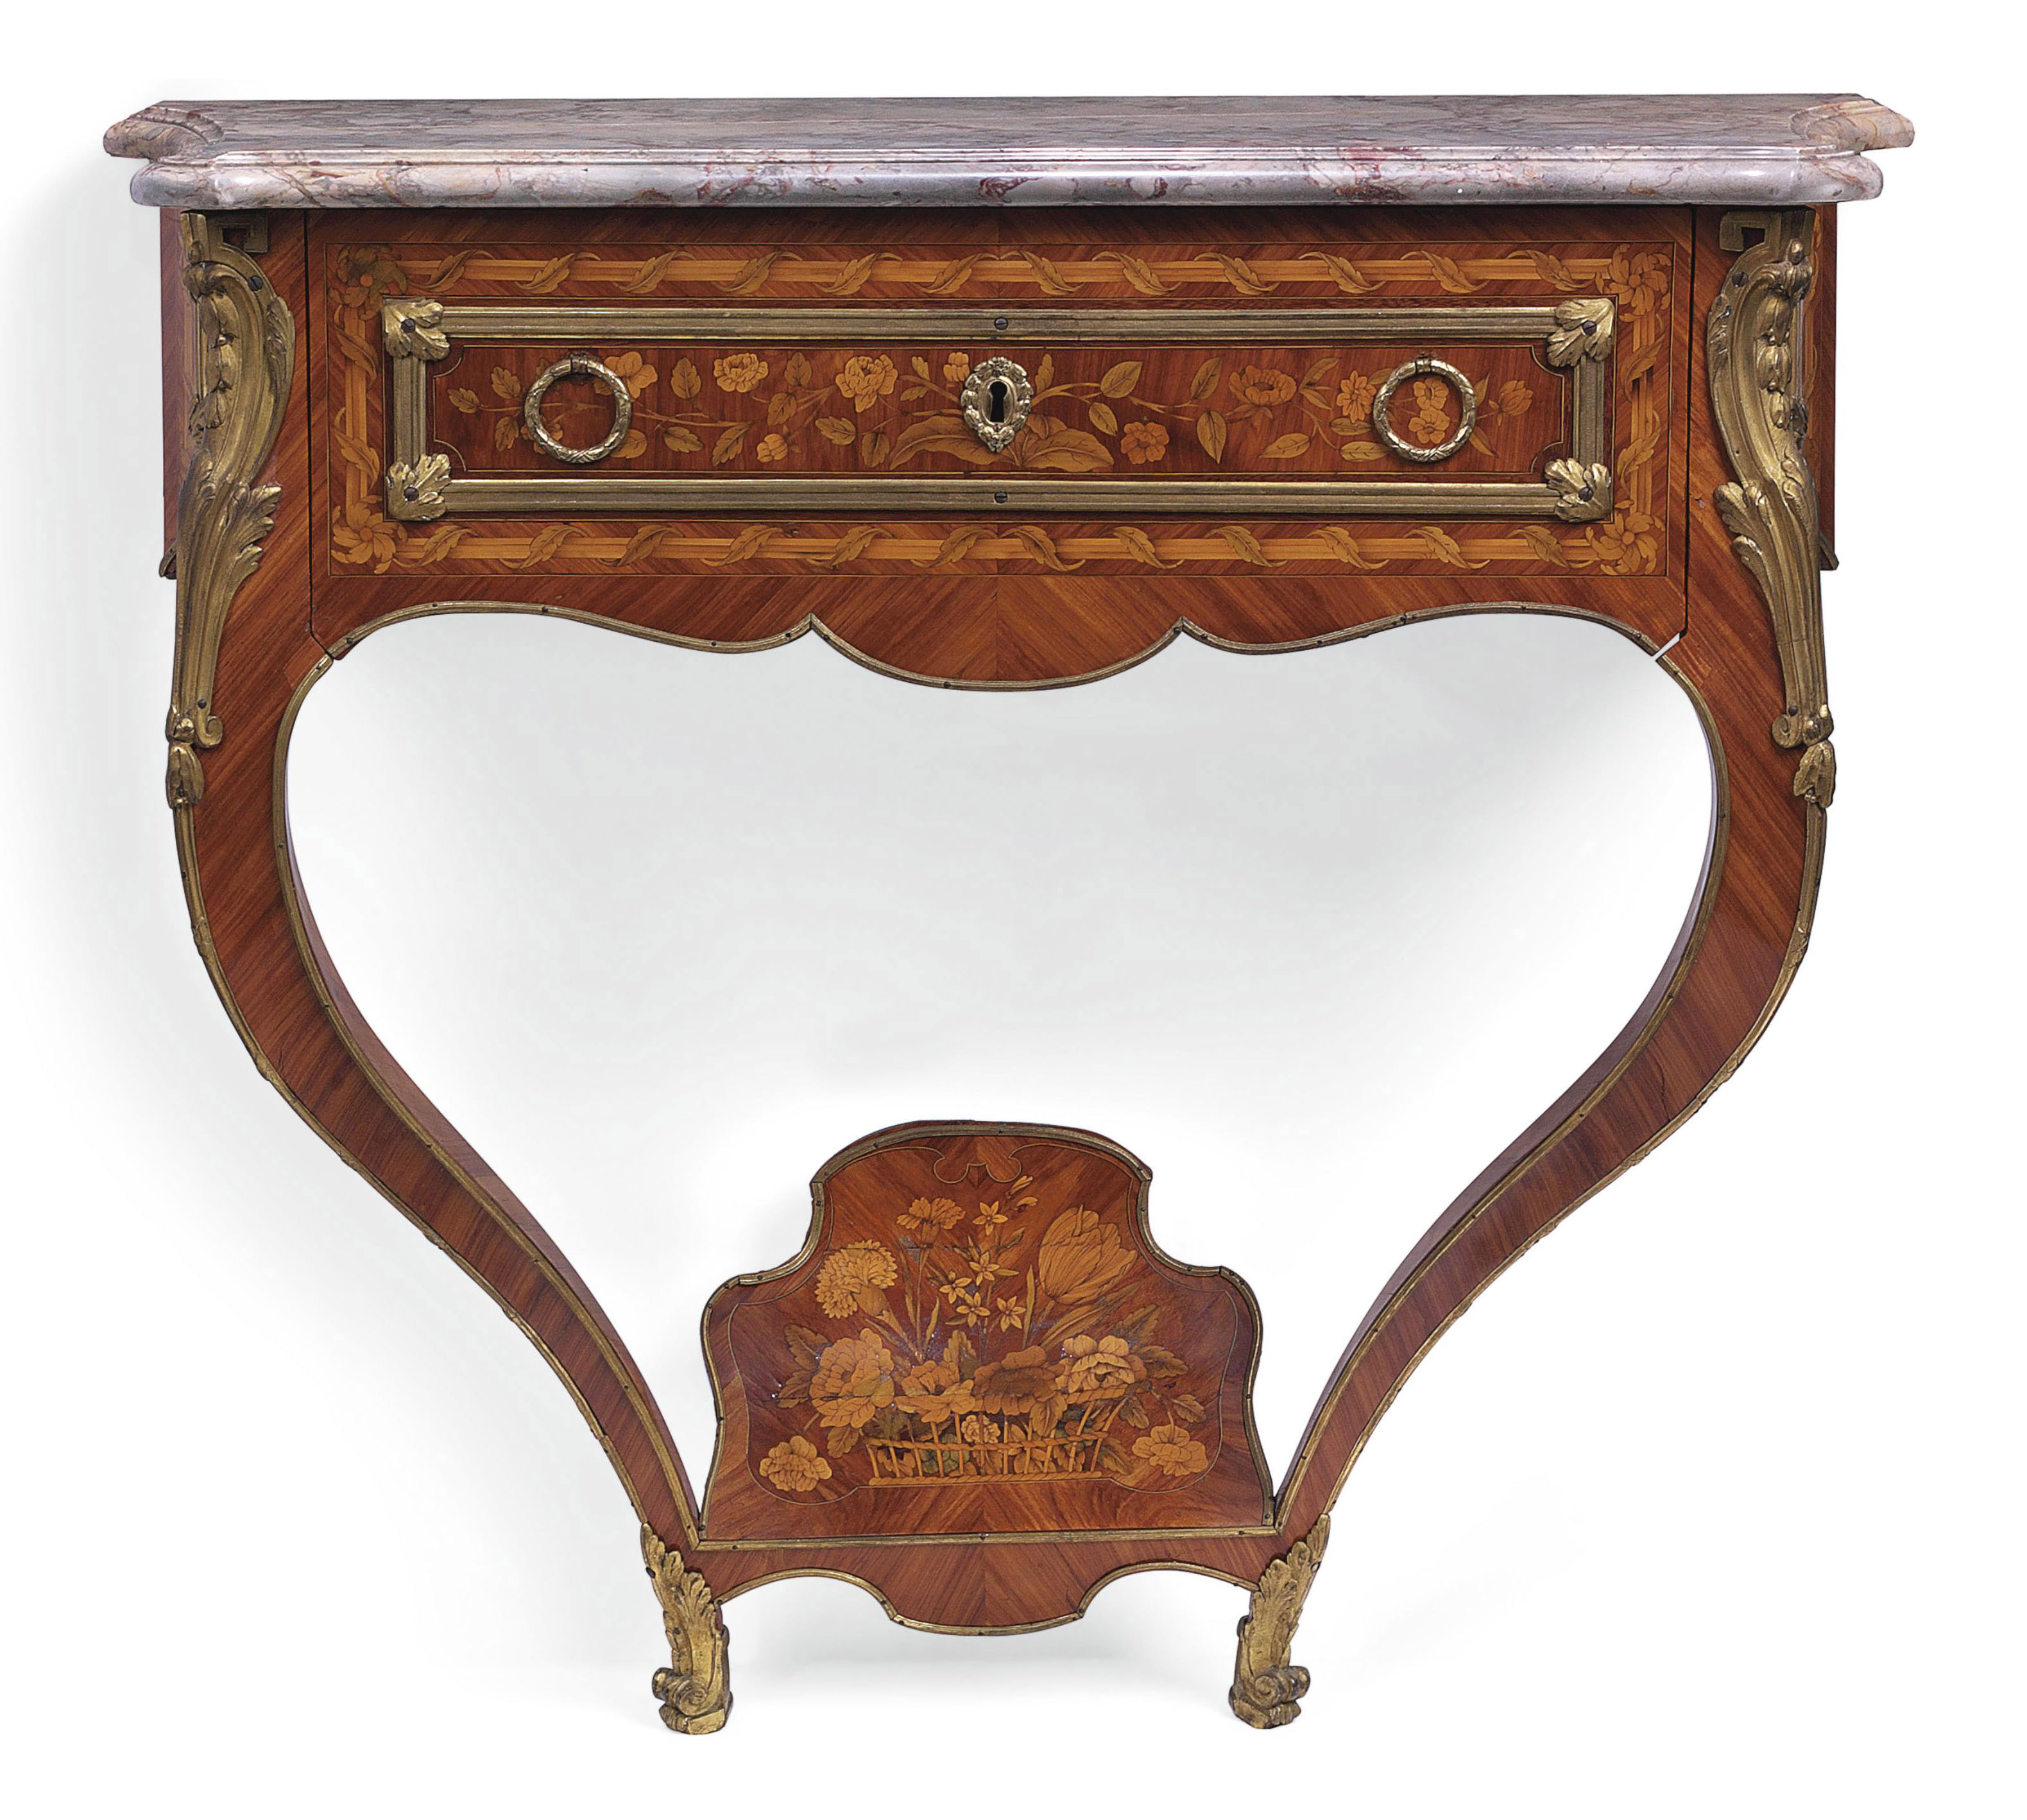 A LOUIS XV ORMOLU-MOUNTED TULIPWOOD AND FLORAL MARQUETRY CONSOLE TABLE